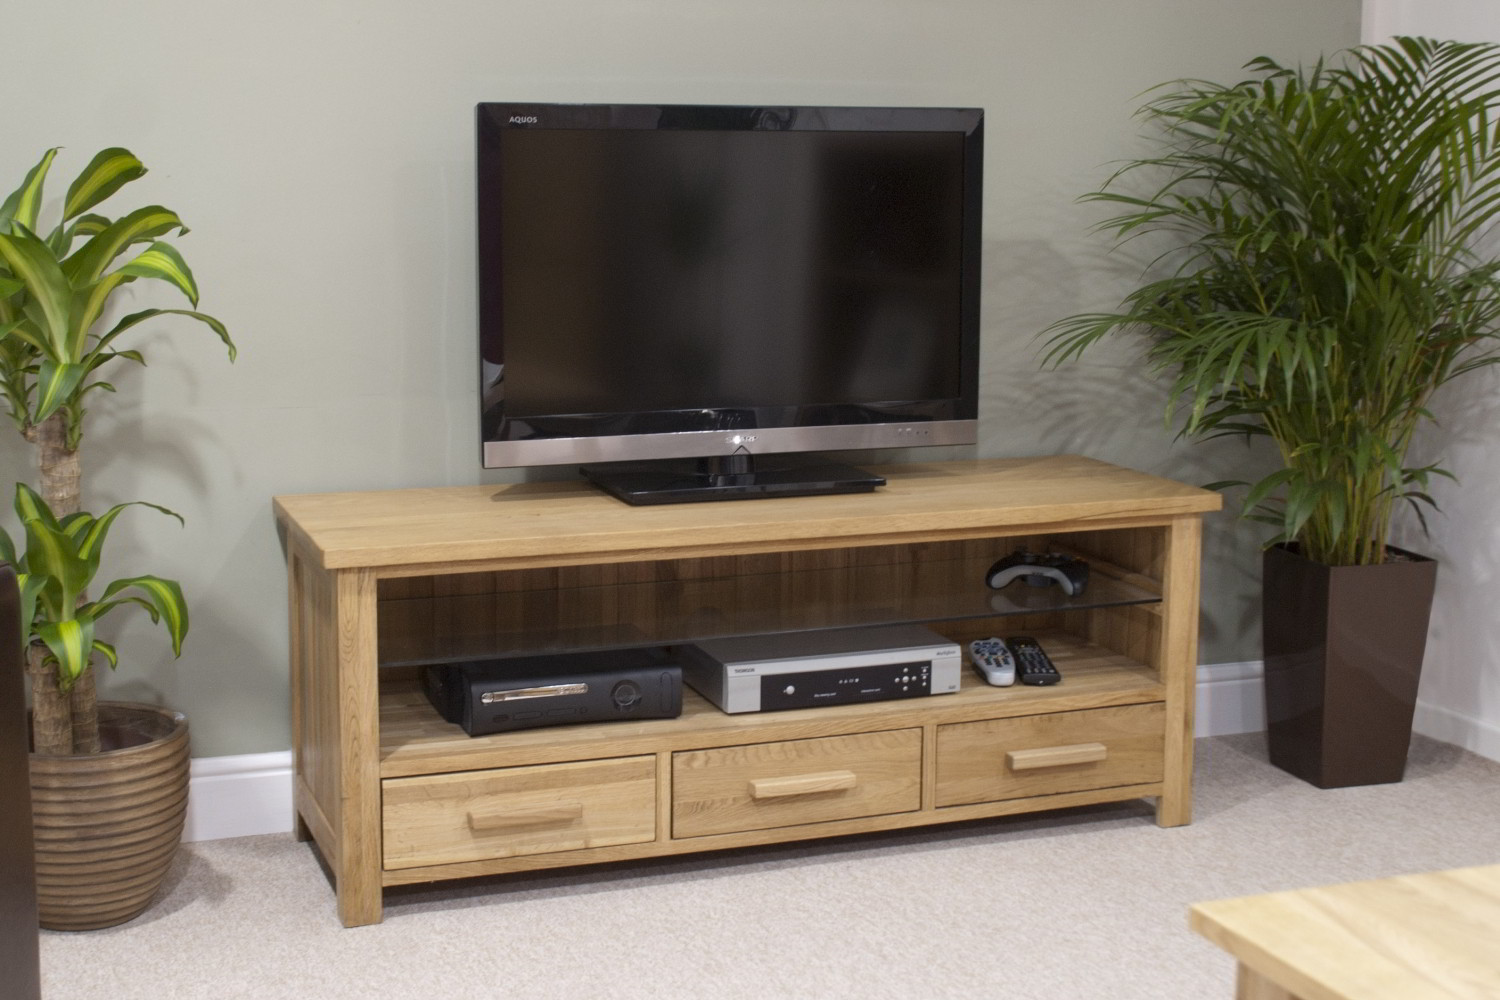 Eton Solid Oak Living Room Furniture Widescreen Tv Cabinet Stand Unit Ebay